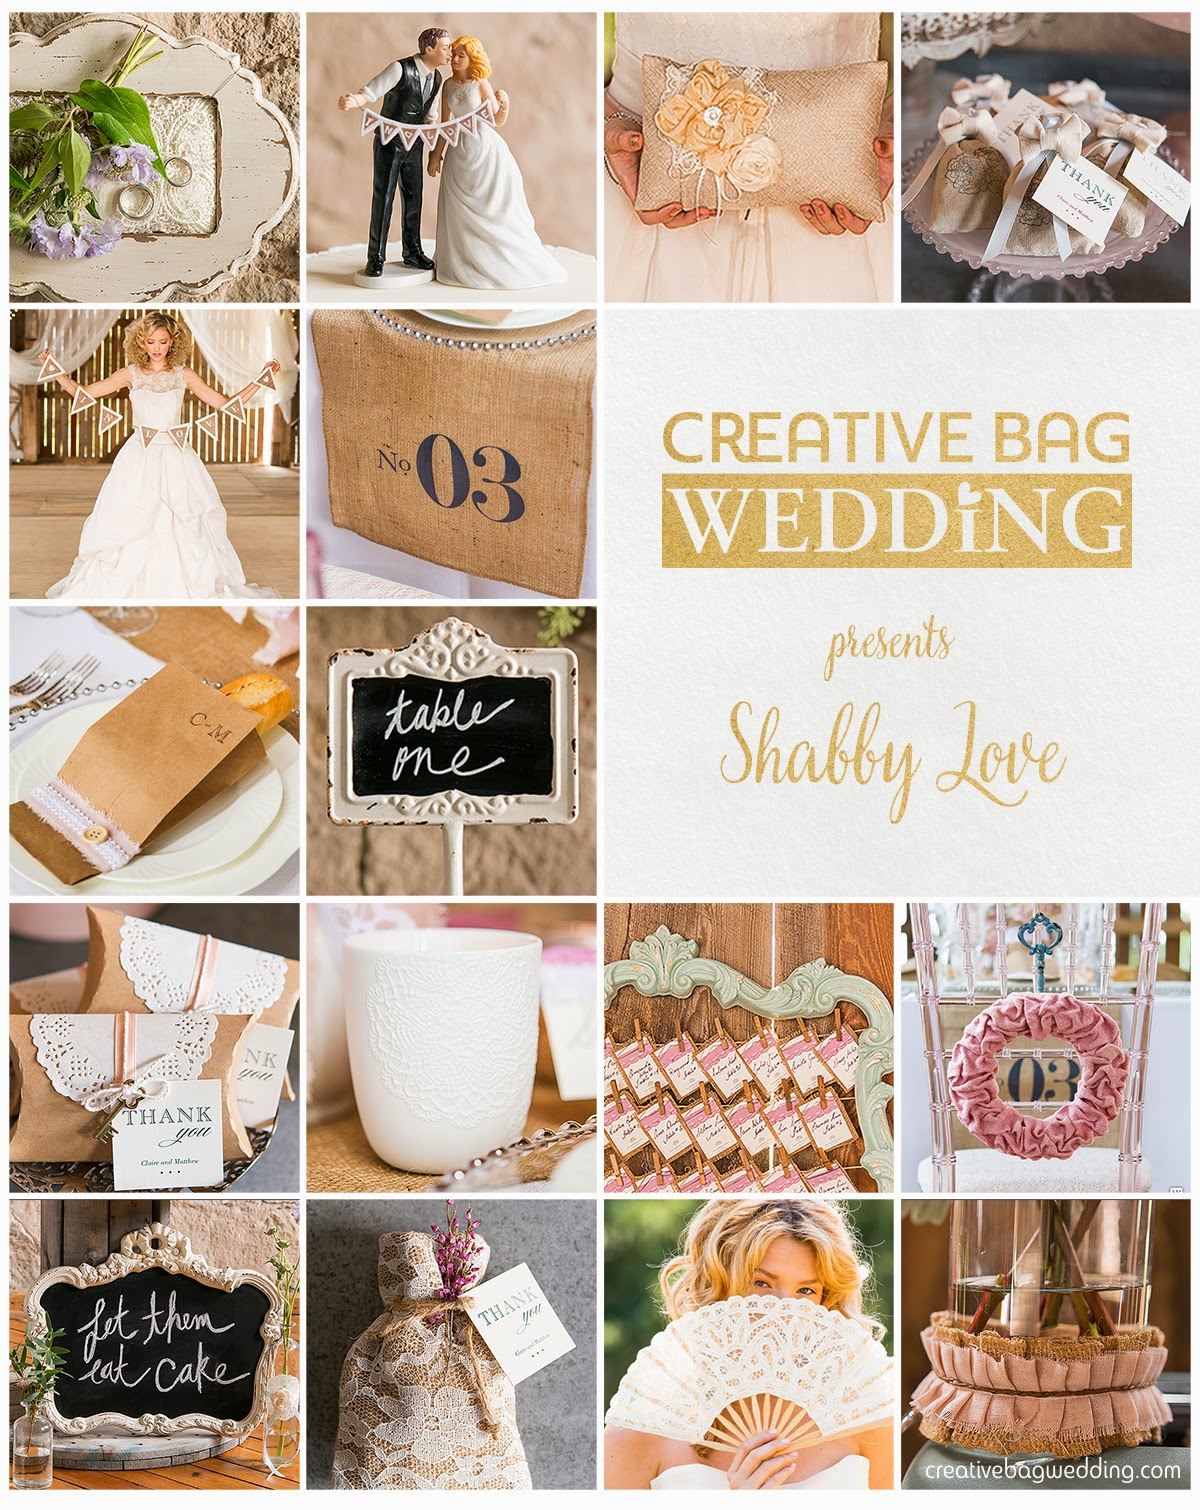 shabby love theme mood board | Creative Bag Wedding